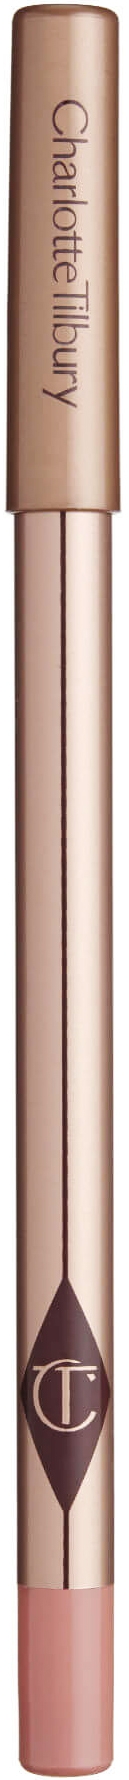 Charlotte Tilbury Lip Cheat in Pillow Talk